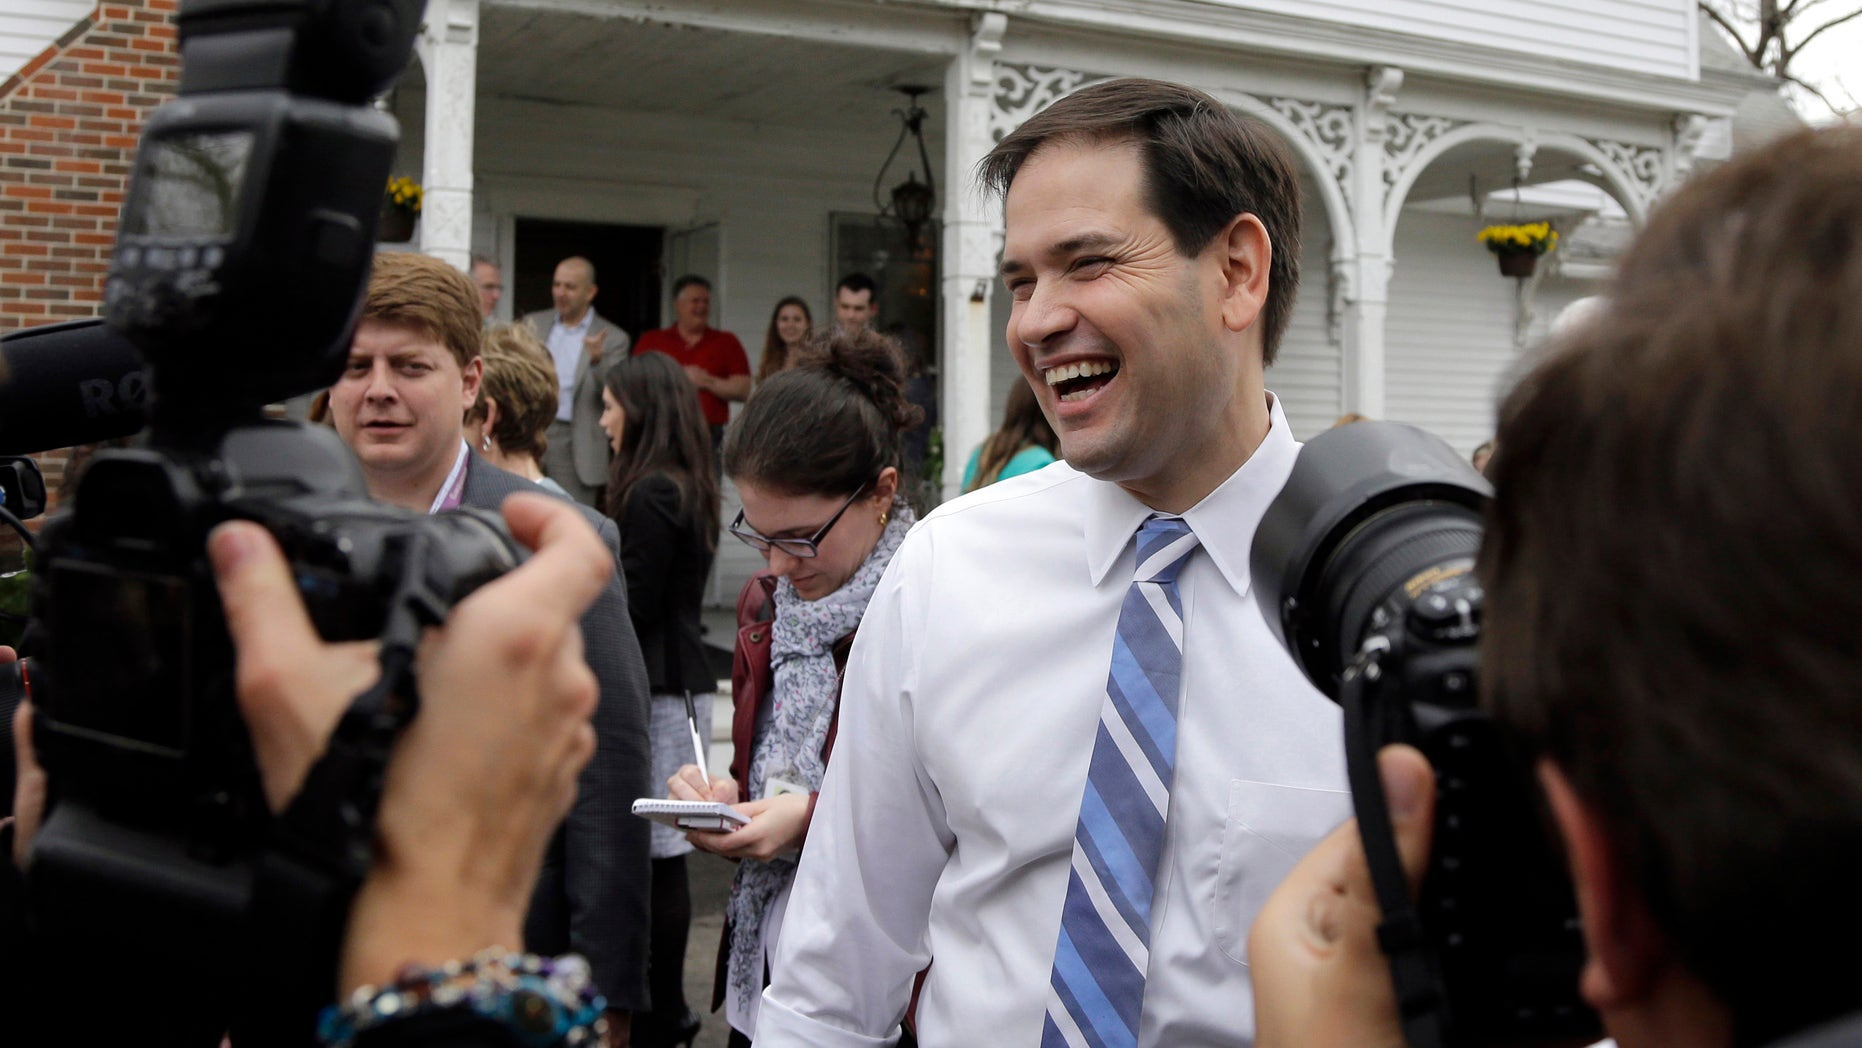 In this April 17, 2015 photo, Republican presidential candidate, Sen. Marco Rubio, R-Fla., laughs as he is surrounded by media at a campaign house party in Manchester, N.H. Devoted political allies for more than a decade, the alliance between former Florida Gov. Jeb Bush and Rubio is beginning to splinter as the one-time mentor and his political protégé face off in the race for the Republican presidential nomination. (AP Photo/Elise Amendola)